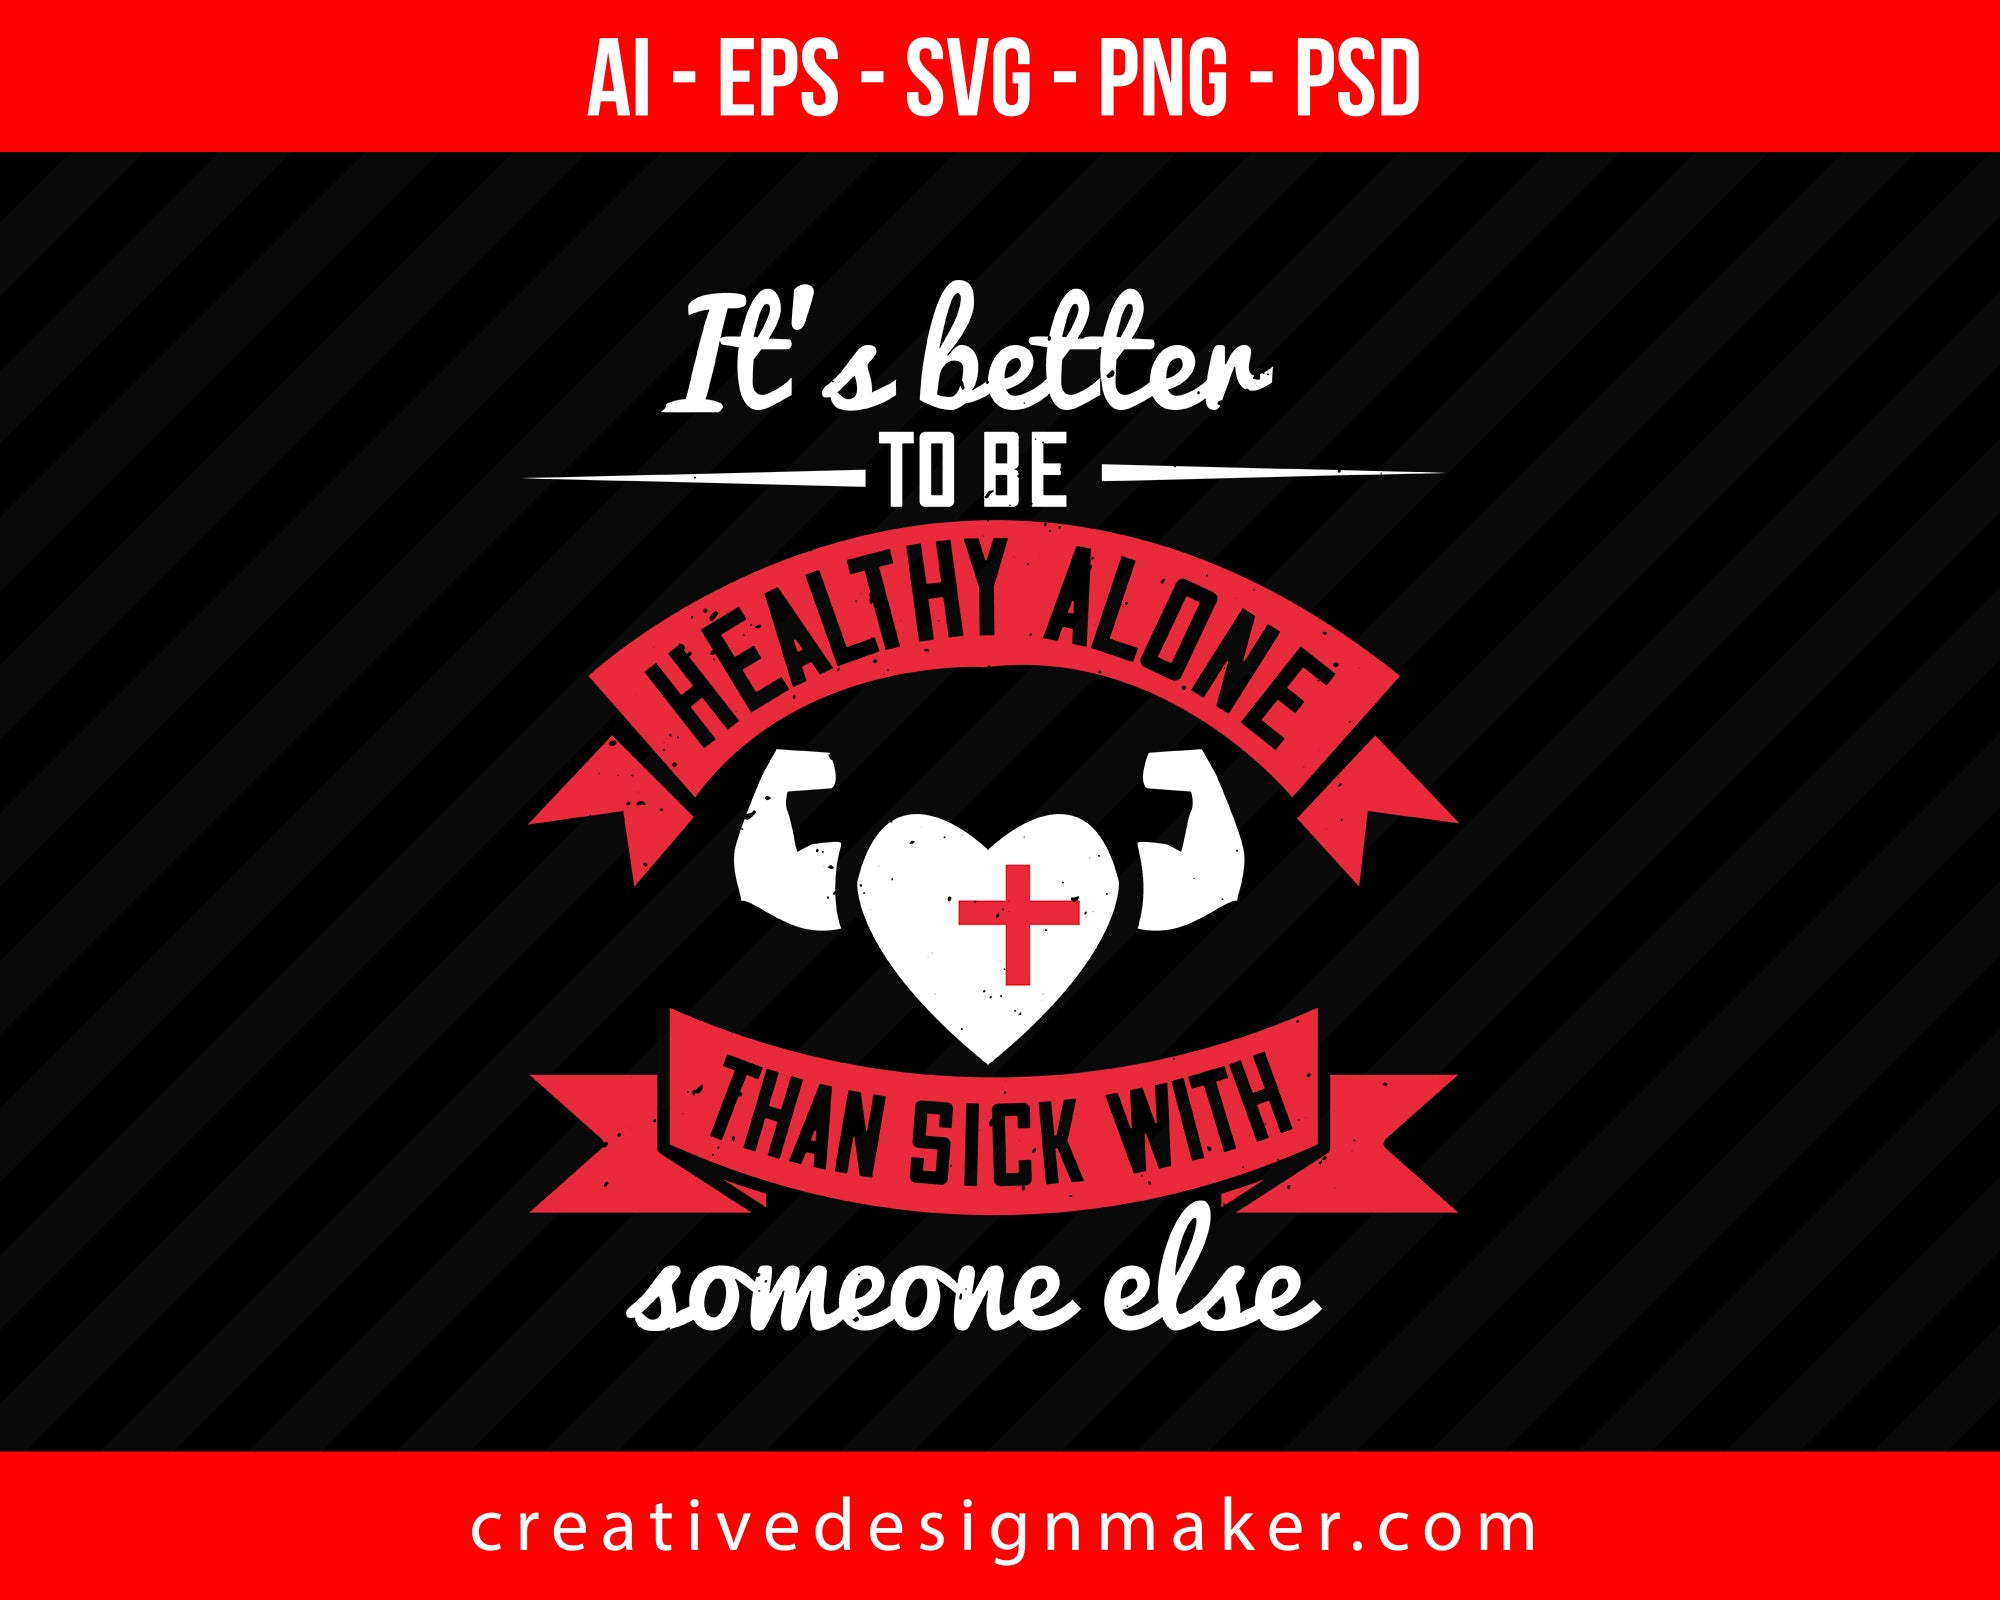 It's Better To Be Healthy Alone Than Sick With Someone Else World Health Print Ready Editable T-Shirt SVG Design!